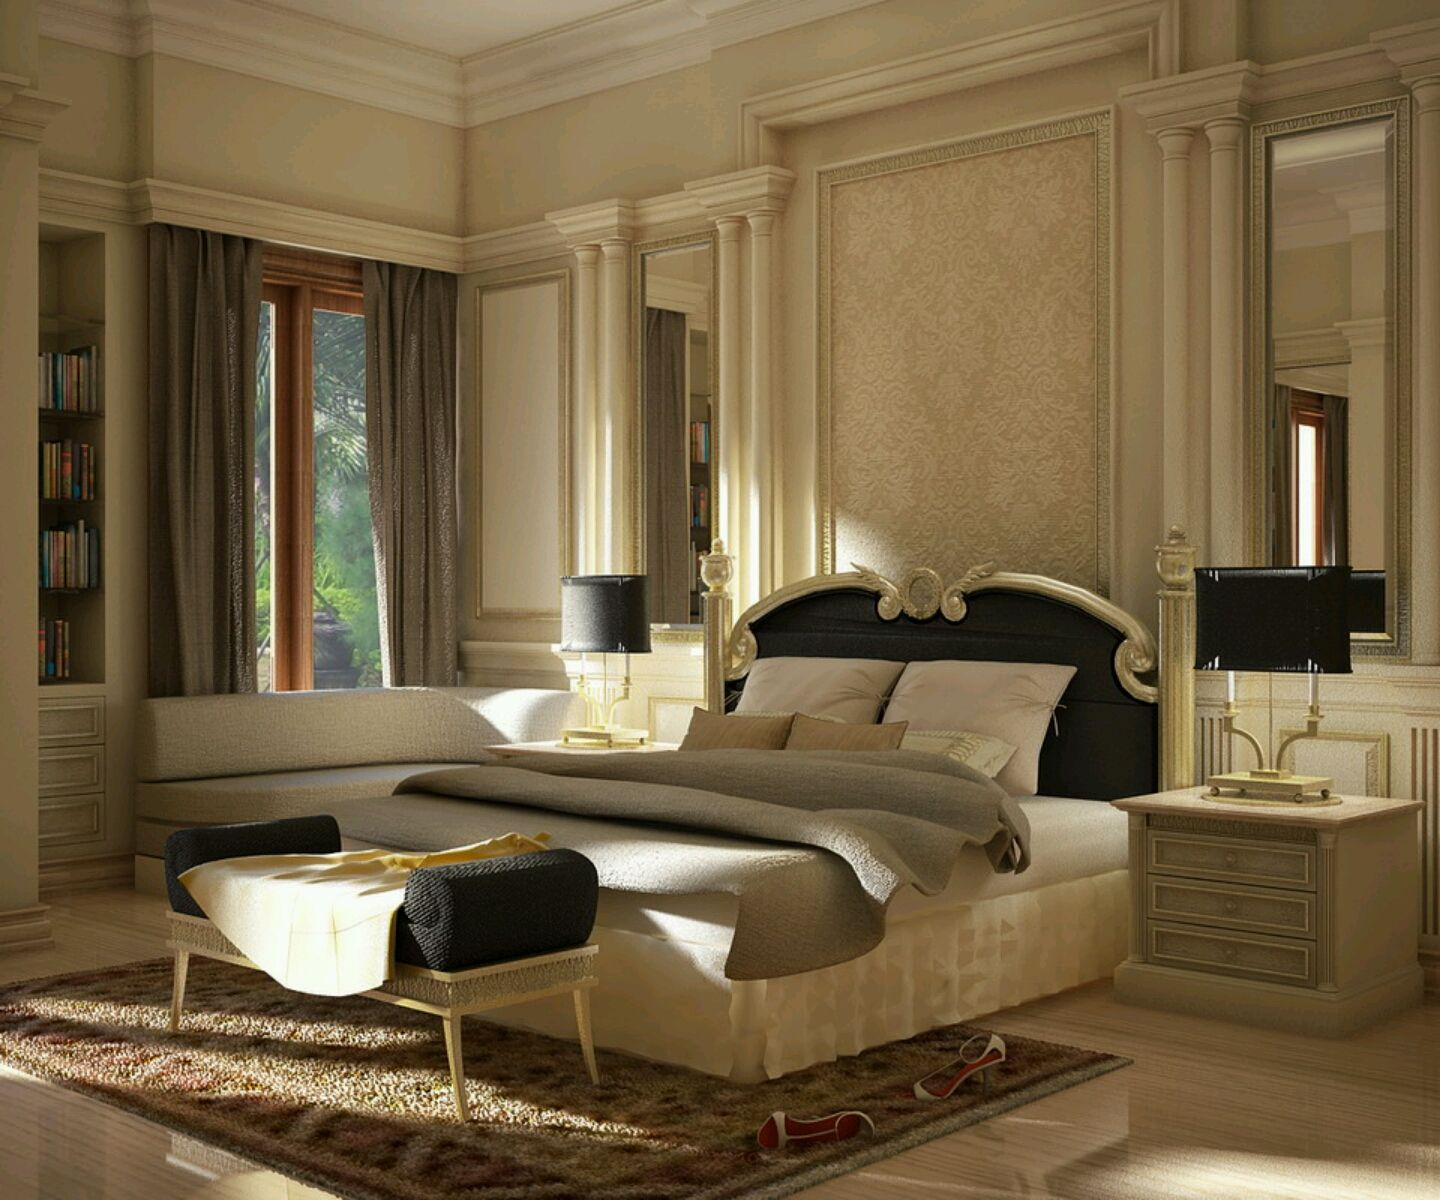 Luxurious Bedroom Design Fascinating Luxary Bedroom  Modern Luxury Bedroom Furniture Designs Ideas Design Inspiration